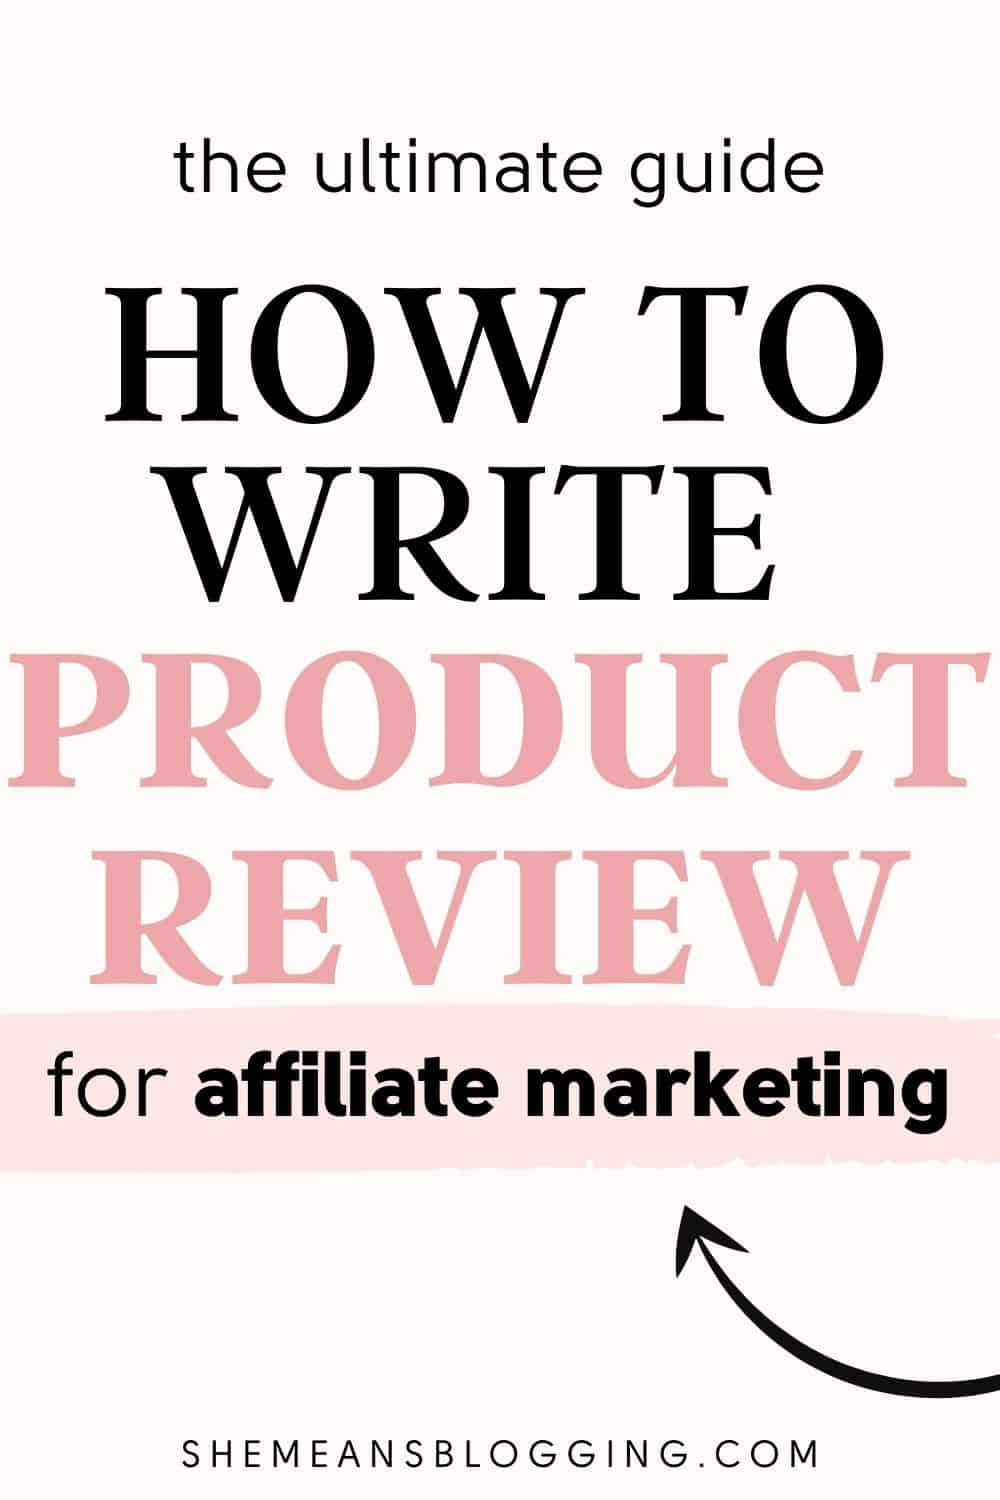 What makes a good affiliate product review? Learn everything on how to write a product review for affiliate marketing. Use this guide to write product reviews